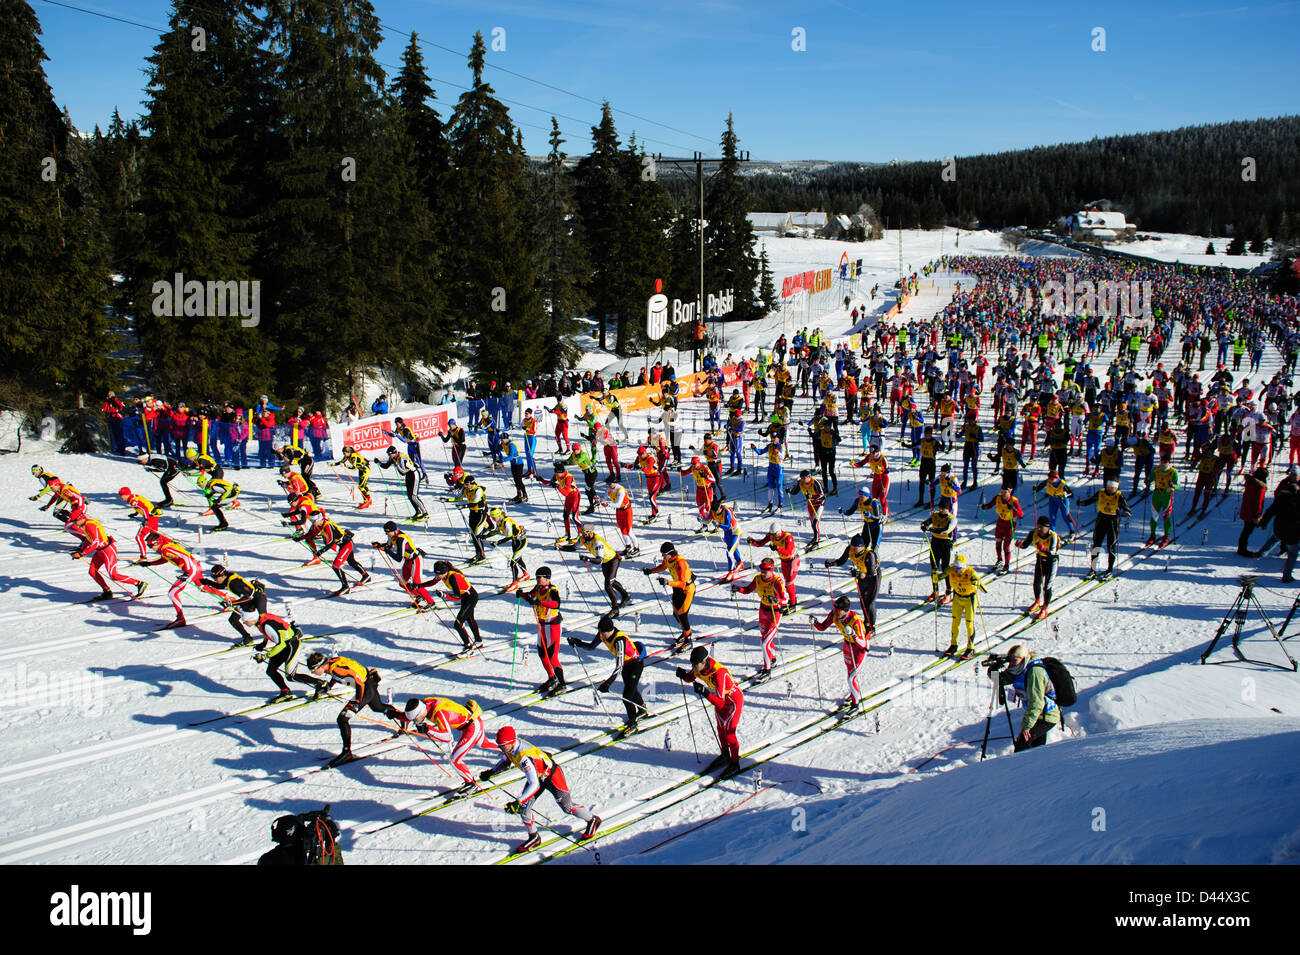 View of the great number of participants of the Bieg Piastow cross-country race, Jakuszyce, Poland. - Stock Image